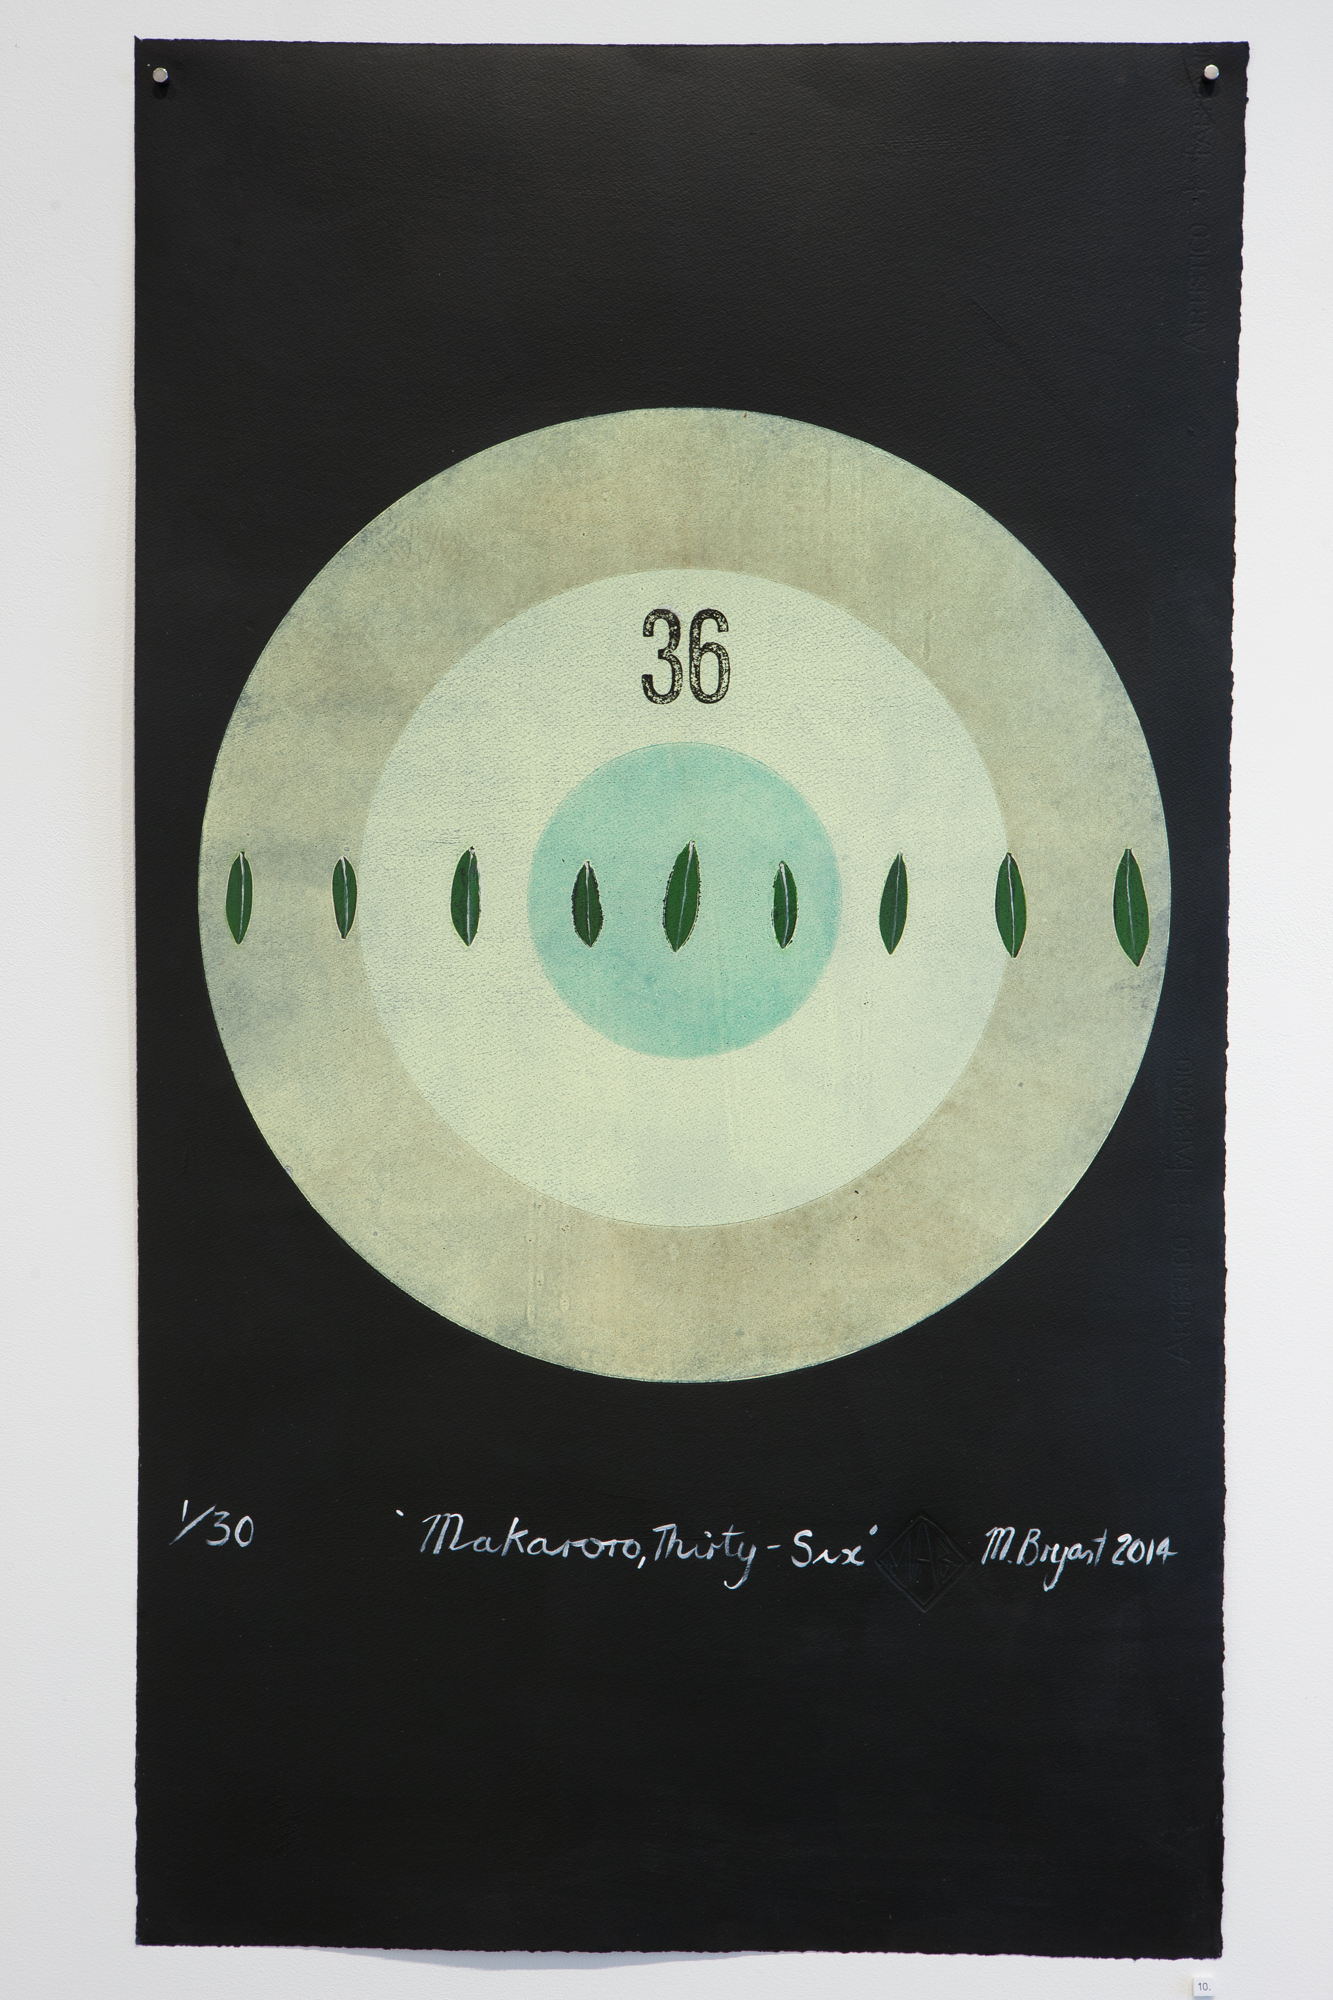 Makaroro, Thirty-Six Michele Bryant 2014